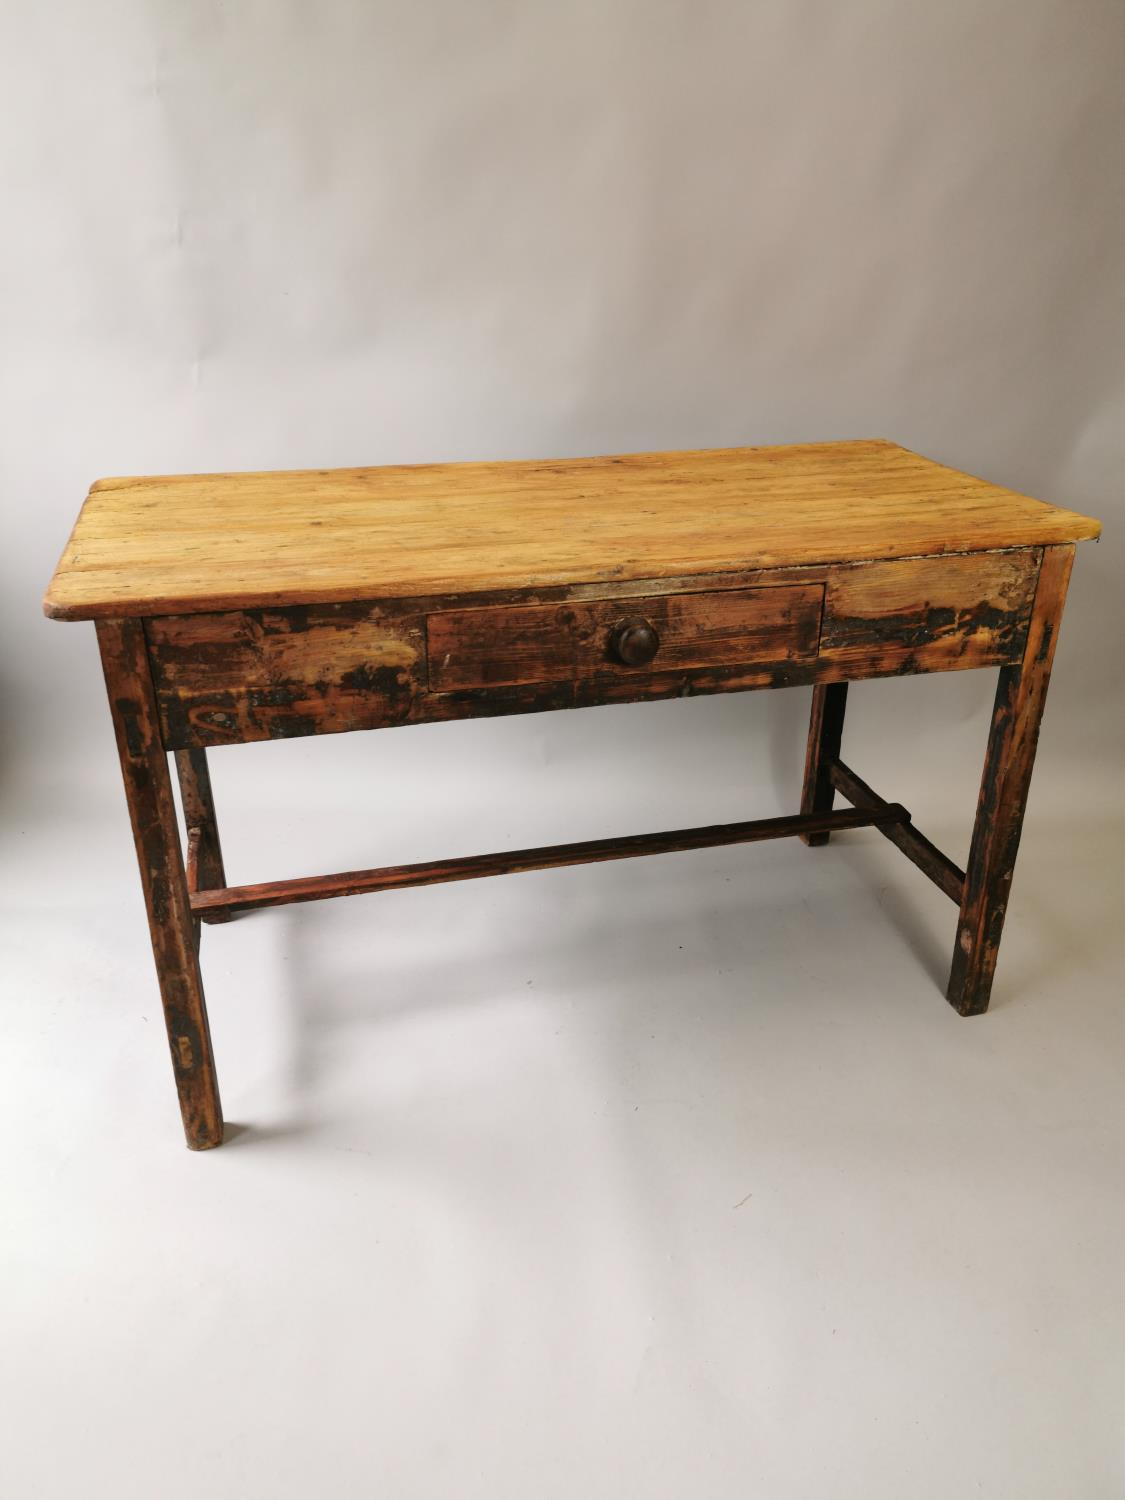 19th. C. painted pine table